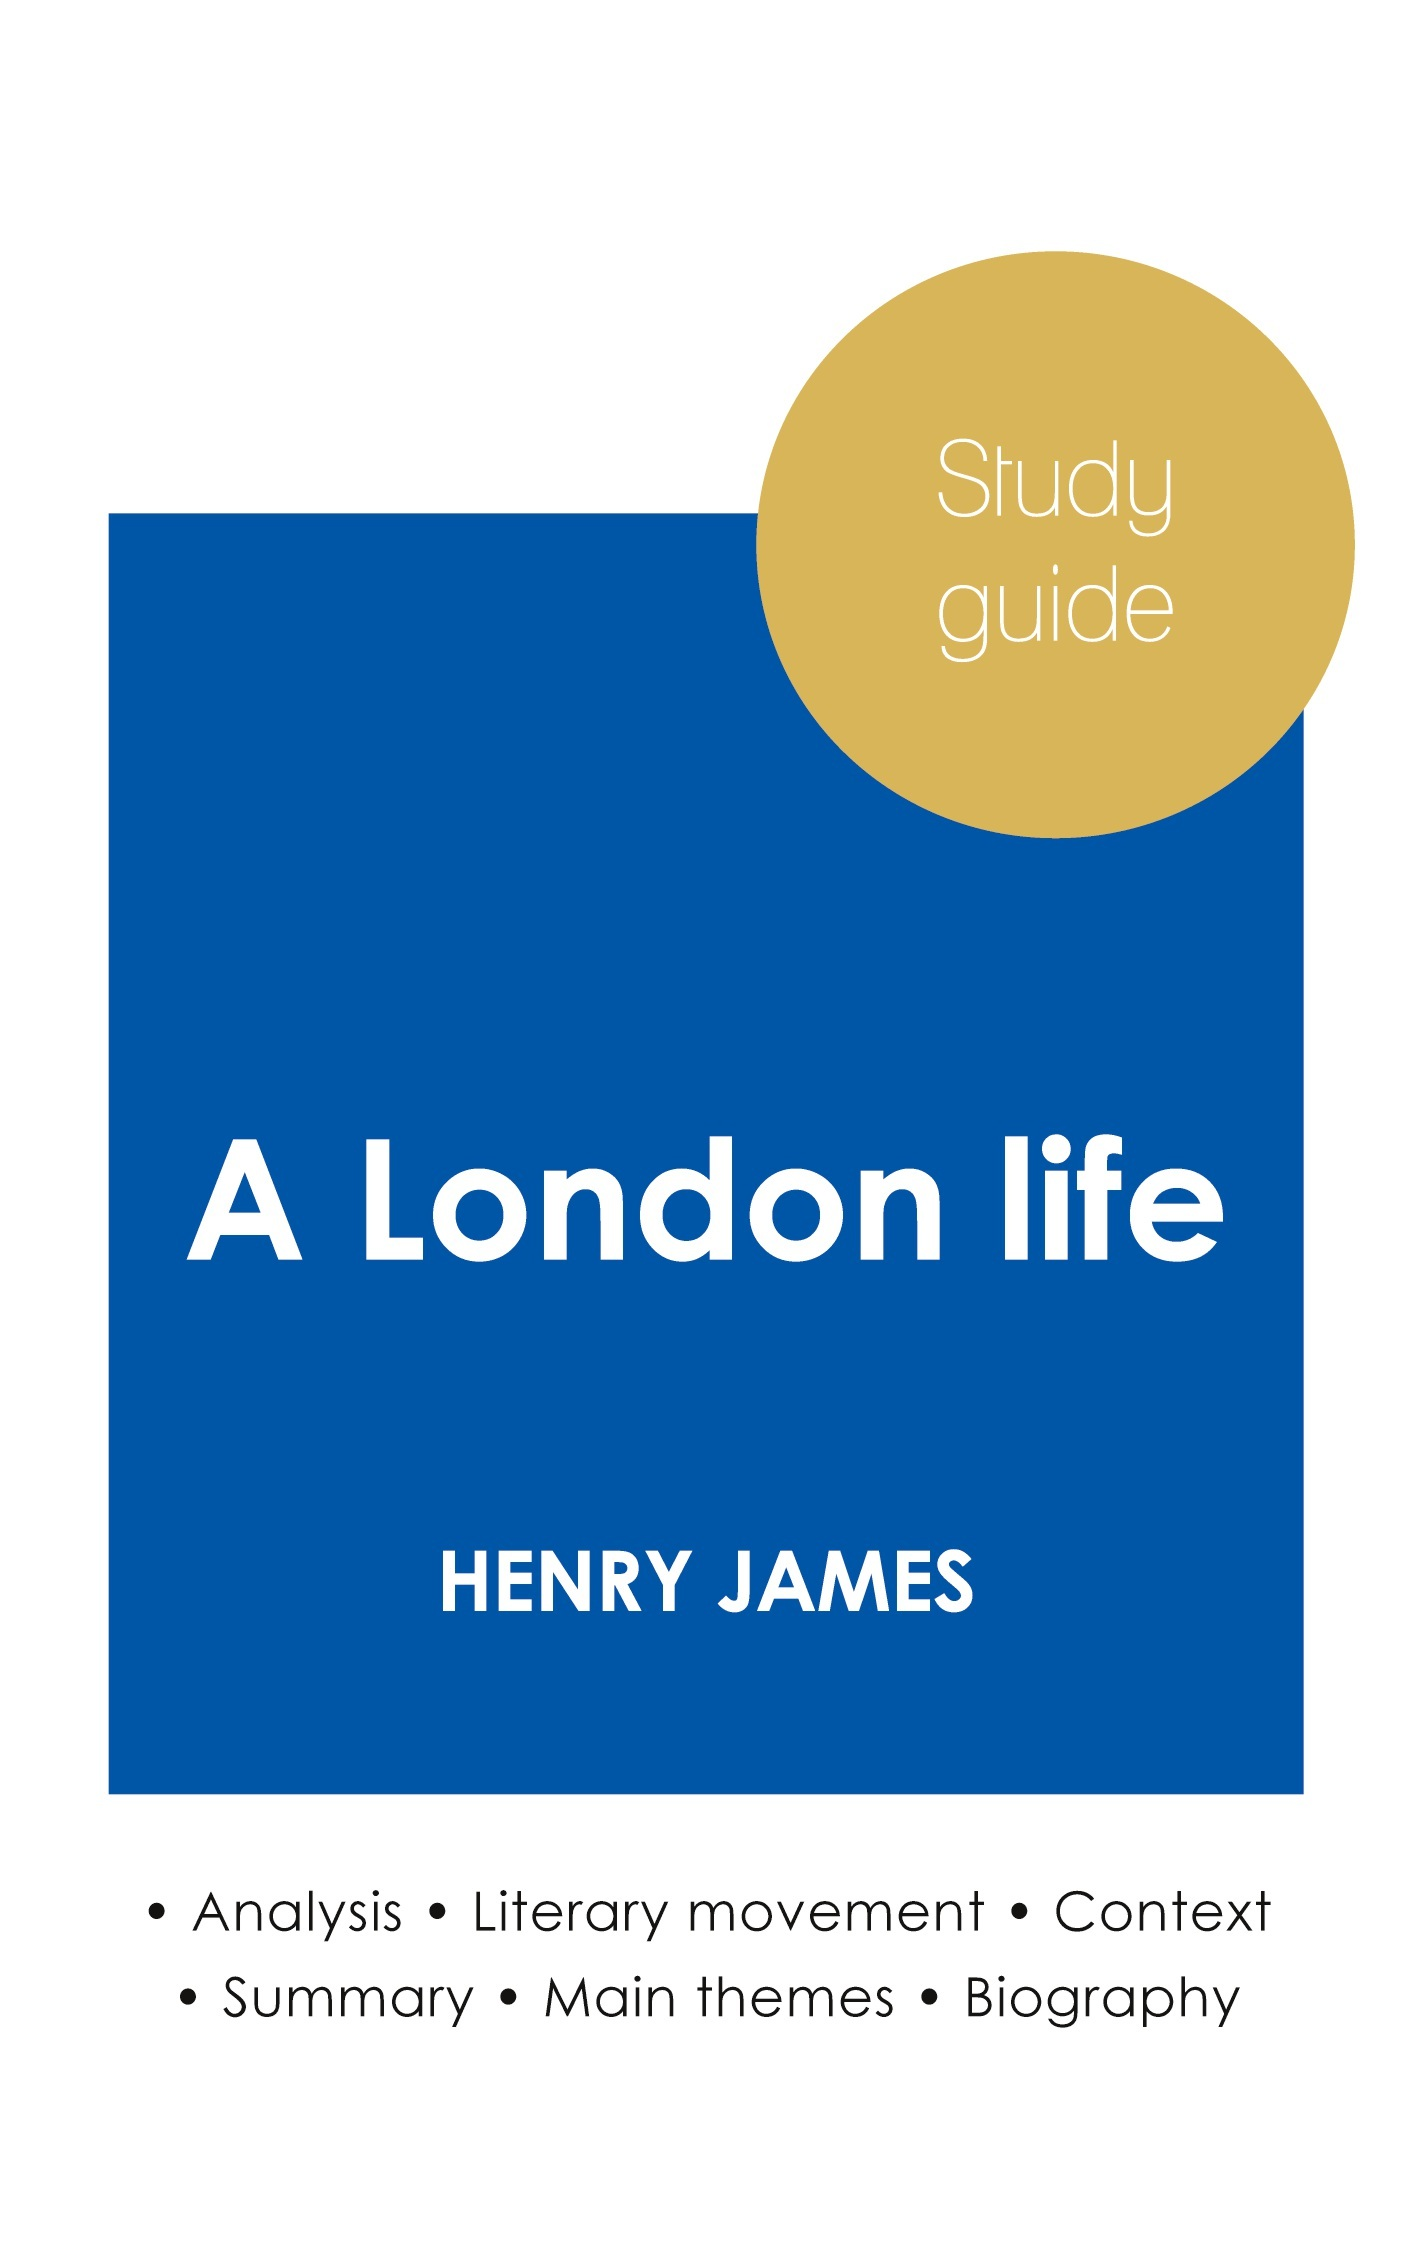 STUDY GUIDE A LONDON LIFE BY HENRY JAMES (IN-DEPTH LITERARY ANALYSIS AND COMPLETE SUMMARY)